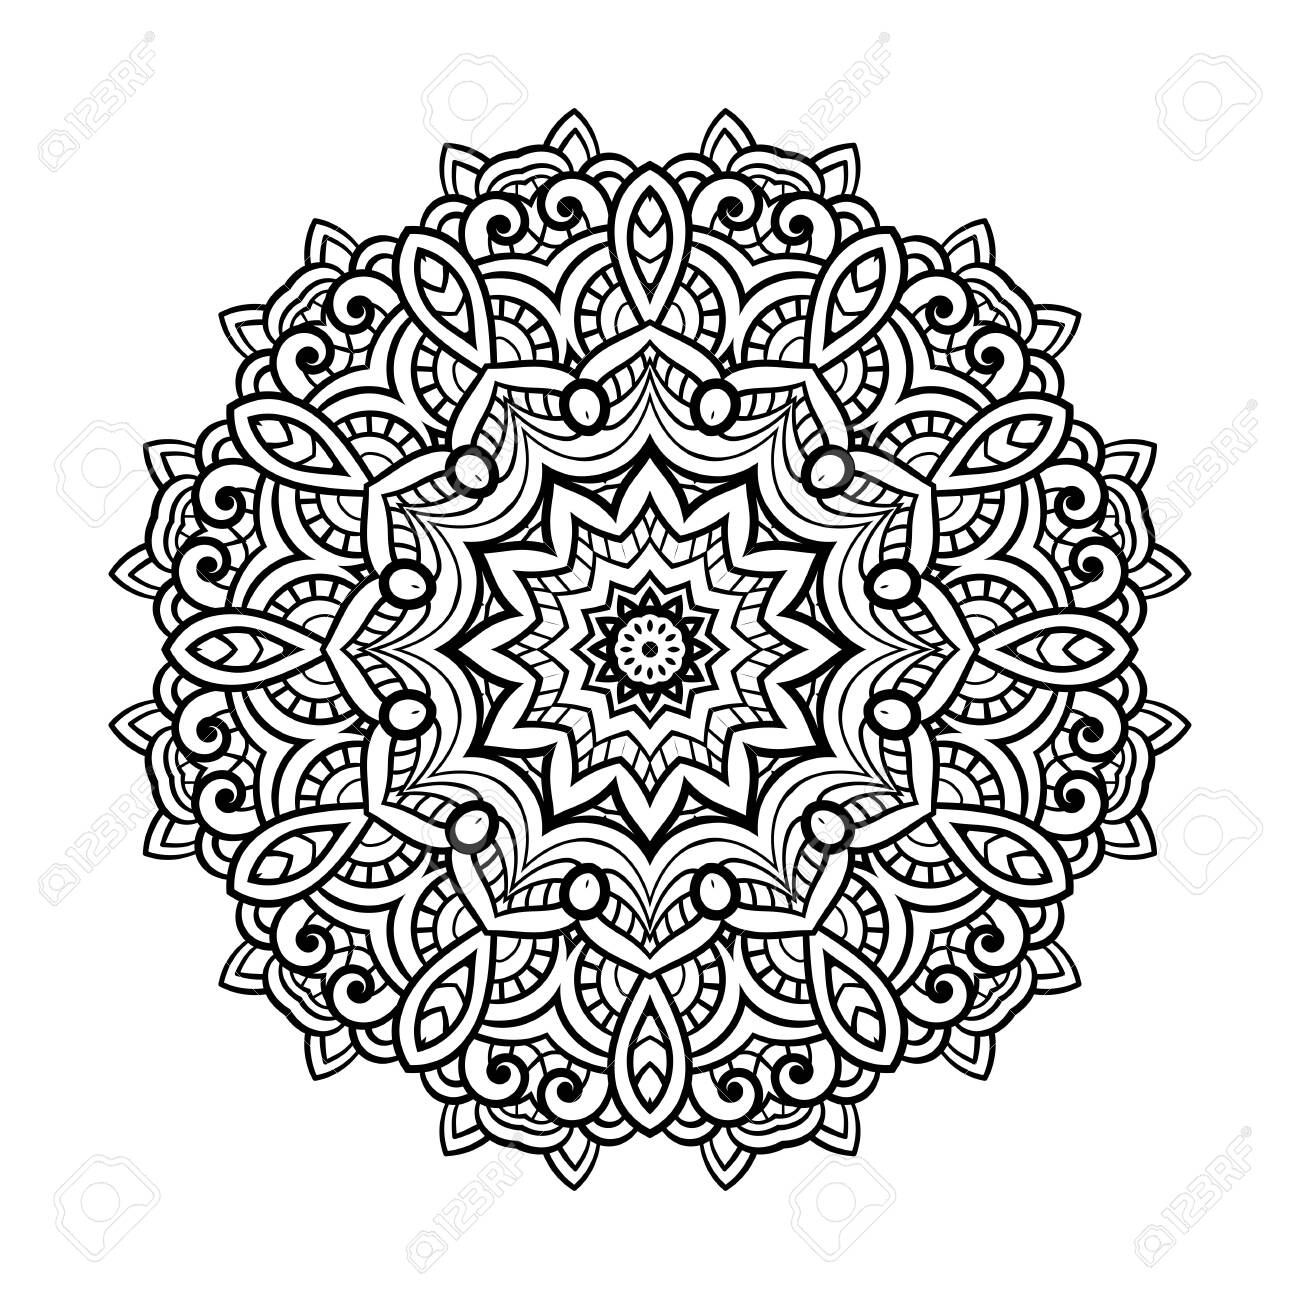 Round for coloring book pages, mandala design. Coloring page with mandala. round ornament lace pattern - 122762985